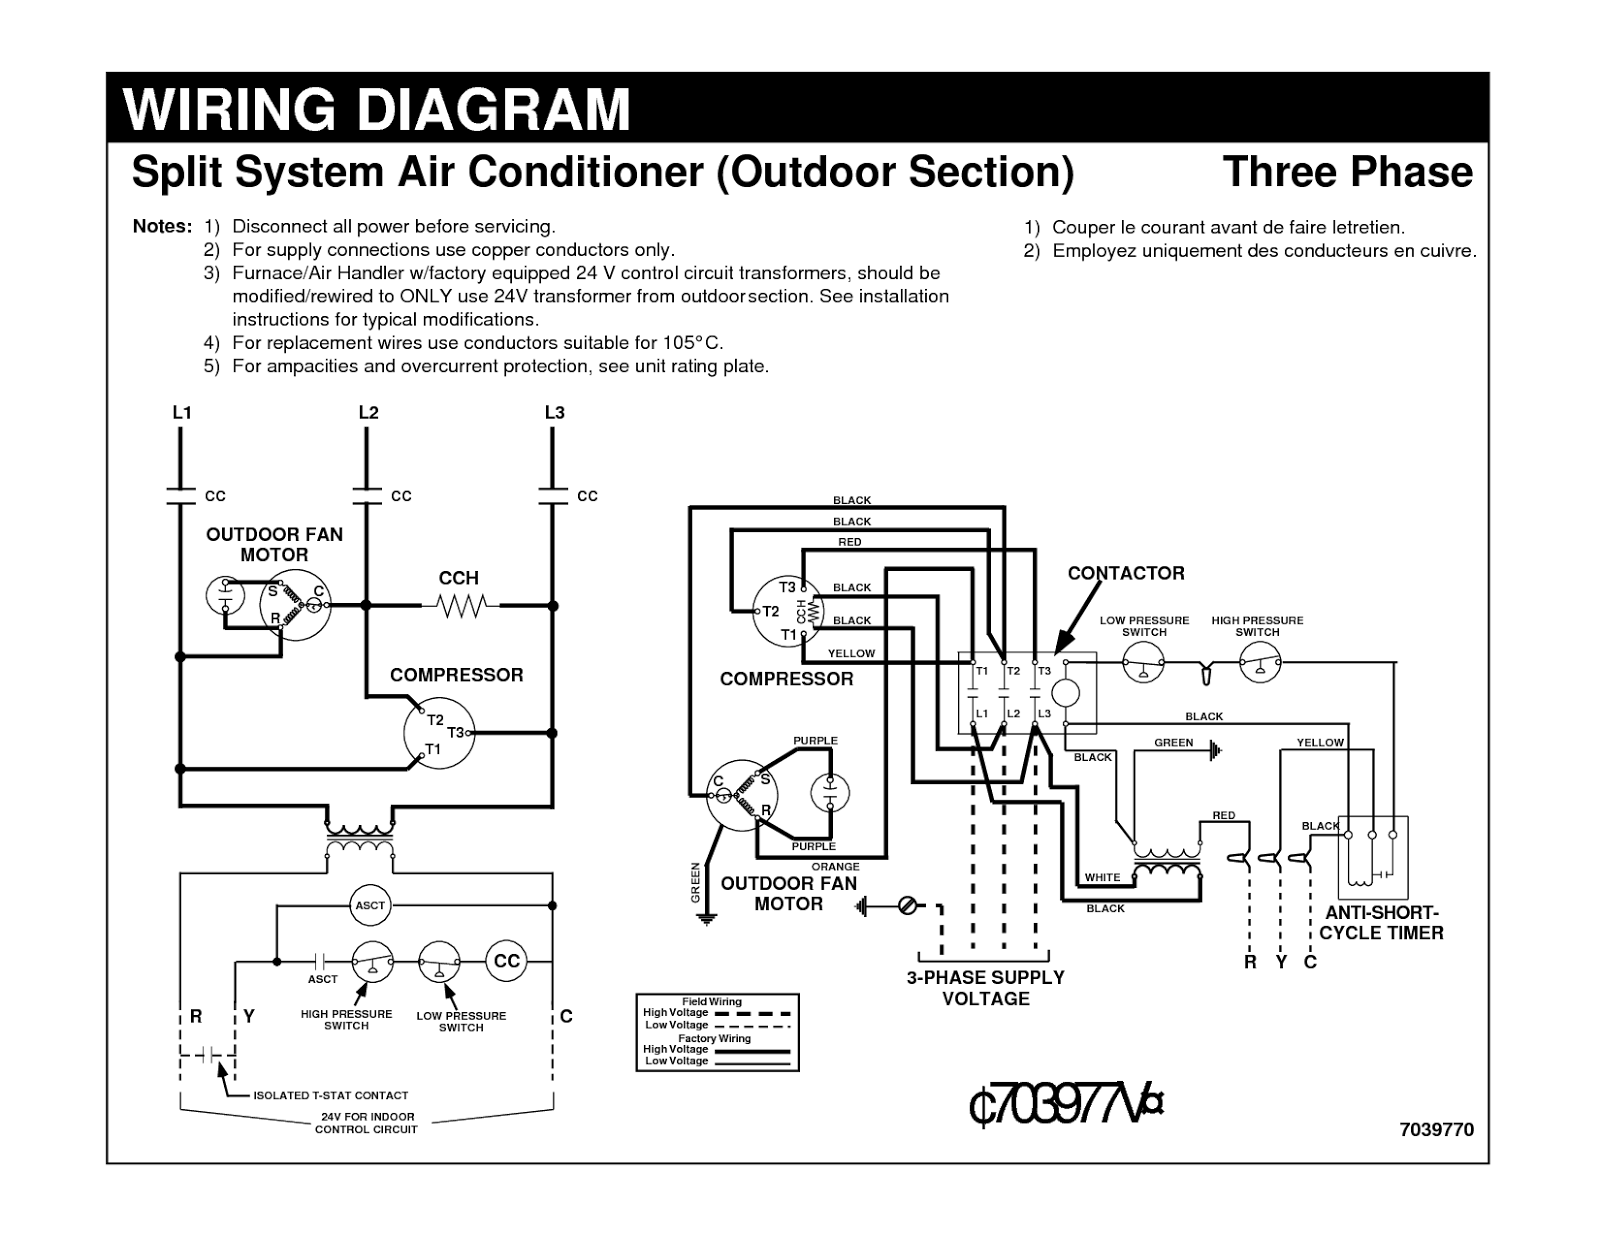 Vintage Air Gen 2 Wiring Diagram from 1.bp.blogspot.com